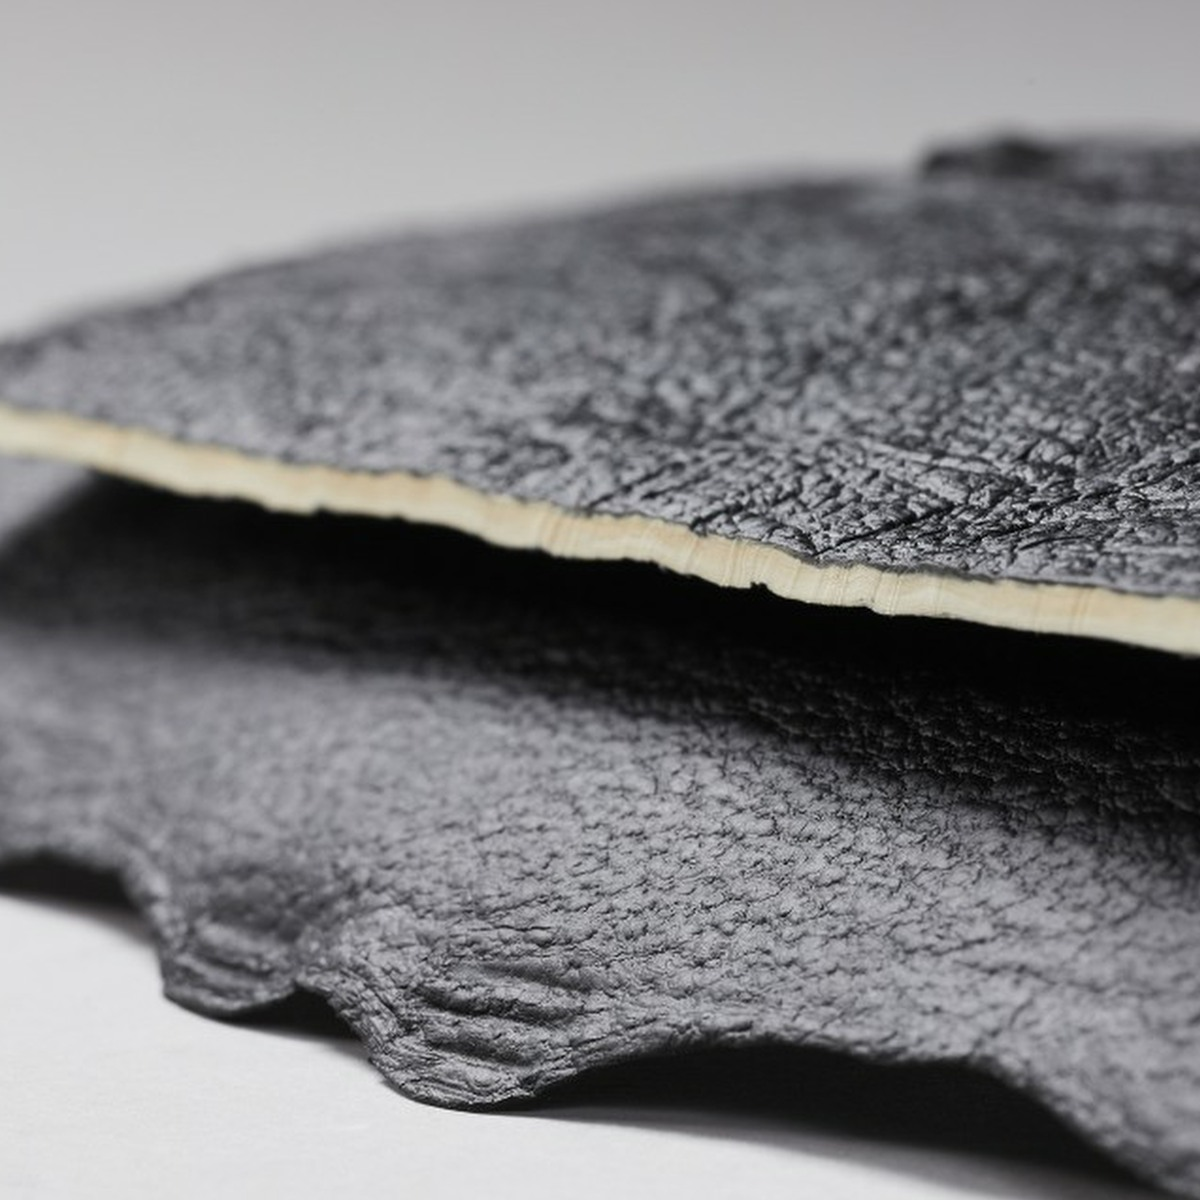 Mylo - Created by BOLT threads, Mylo is a new biomaterial grown from mycelium: an underground root structure. Mycelium is the scientific term for mushrooms, which means that this ethical leather alternative is made from mushrooms. Being created from organic matter, Mylo is completely biodegradable and non-toxic.The first brands that is going to be using this vegan leather is Stella McCartney, with their iconic Falabella bag.One of the best things about Mylo is that because it is made from organic matter, it is completely biodegradable and non-toxic.